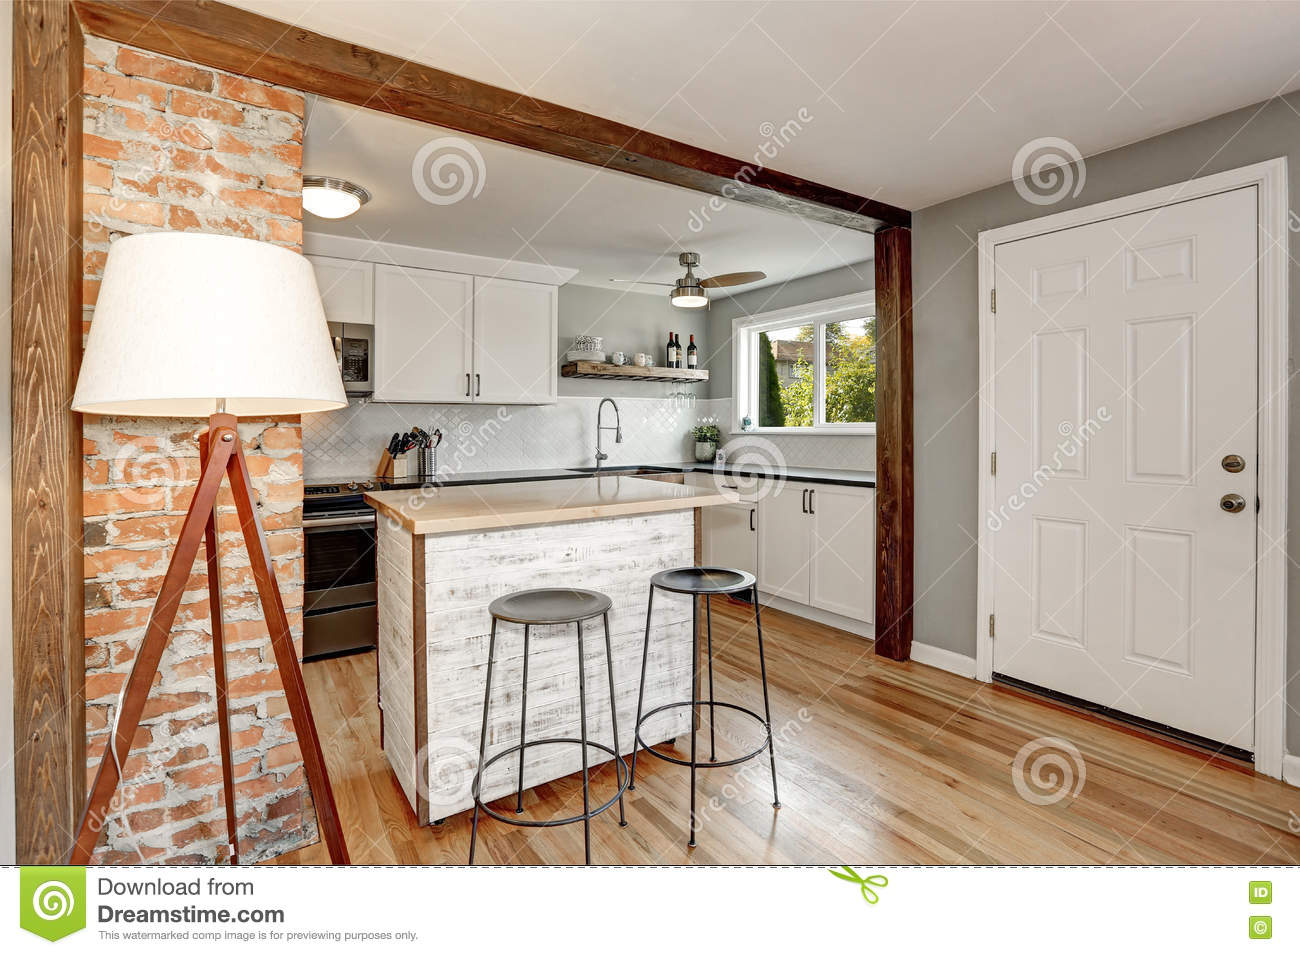 White And Grey Kitchen Room Interior Stock Photo - Image of ...